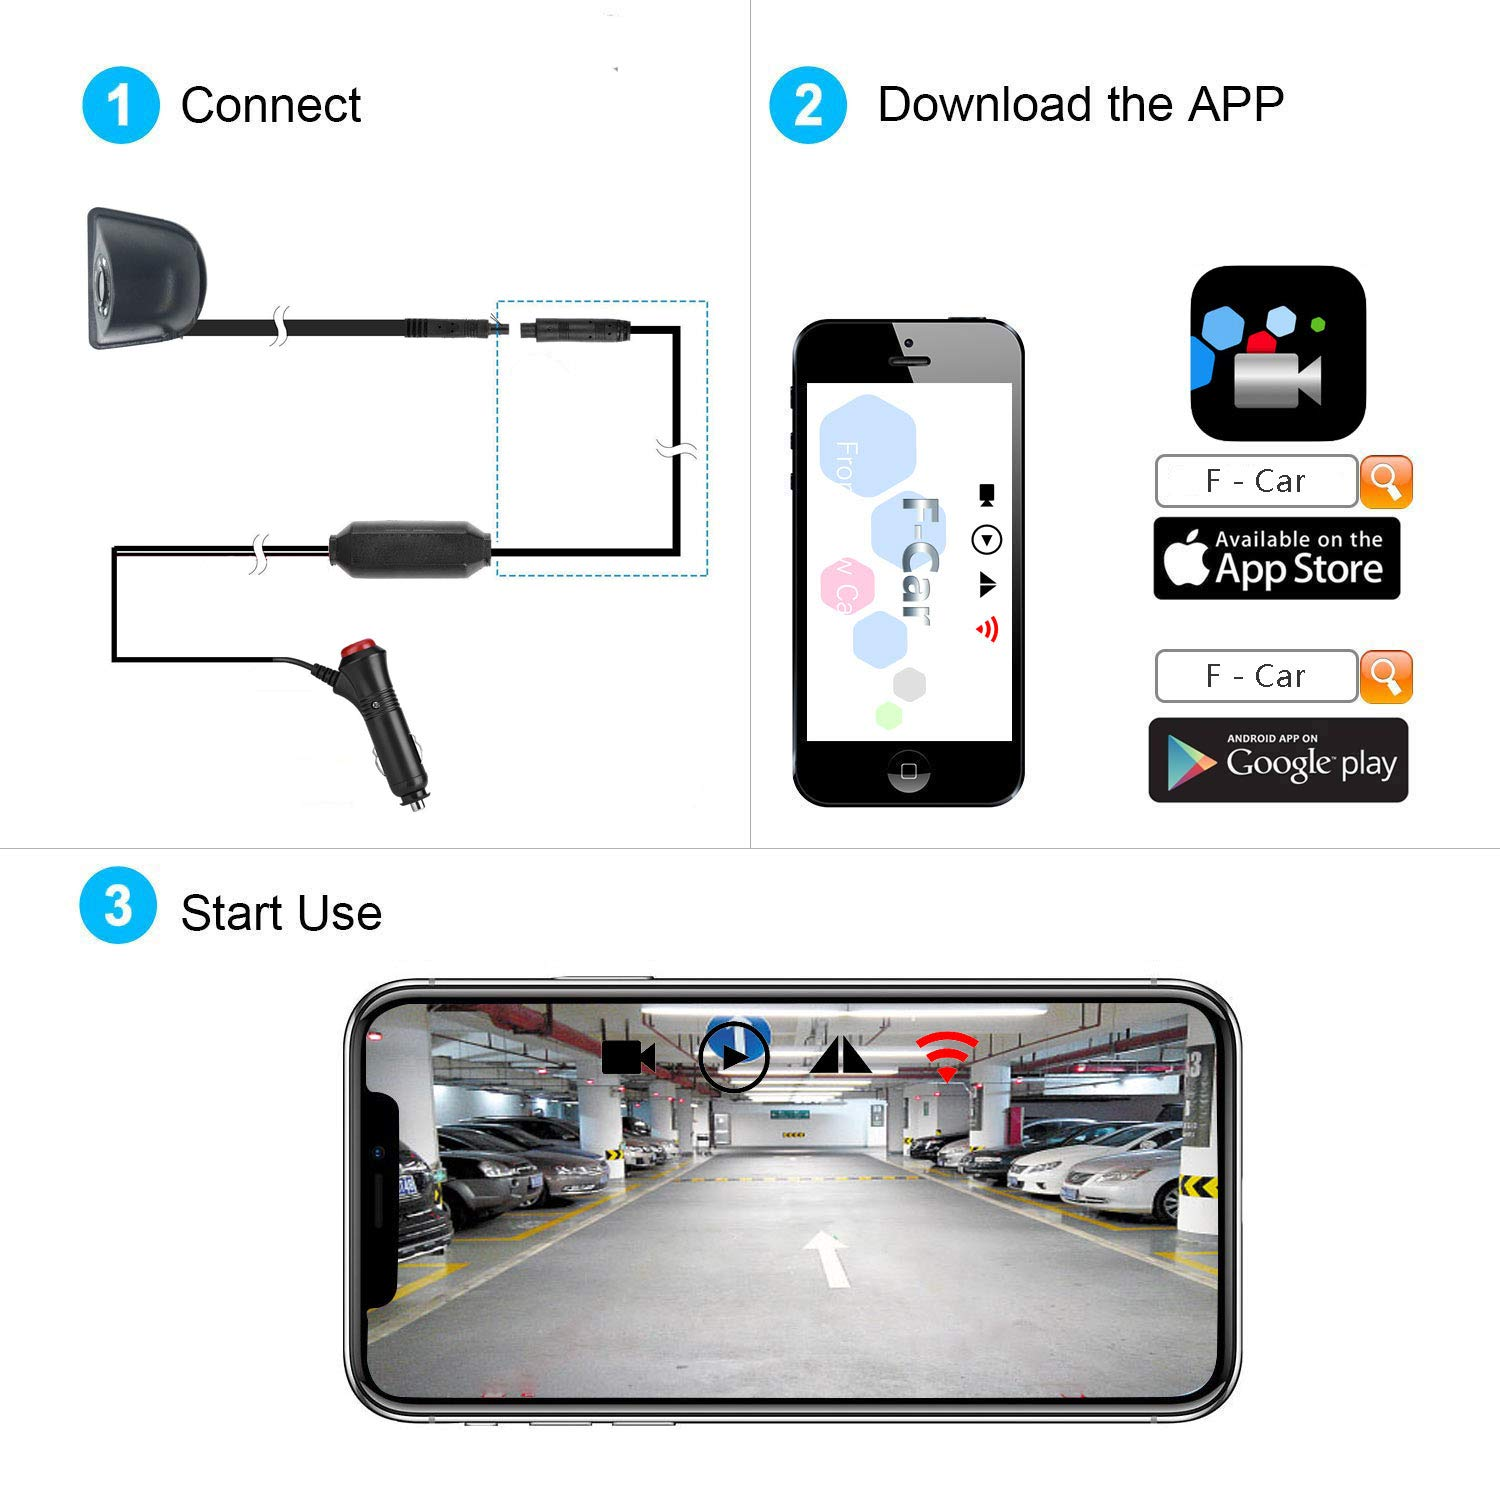 sixsun Wireless WiFi Blind Spot Camera Front Reverse//Right View Side Camera Mirror//Non-Mirror Cam for iOS//Android Smart Devices by APP yck 5558989974 WiFi Blind Spot//Front Camera 12V